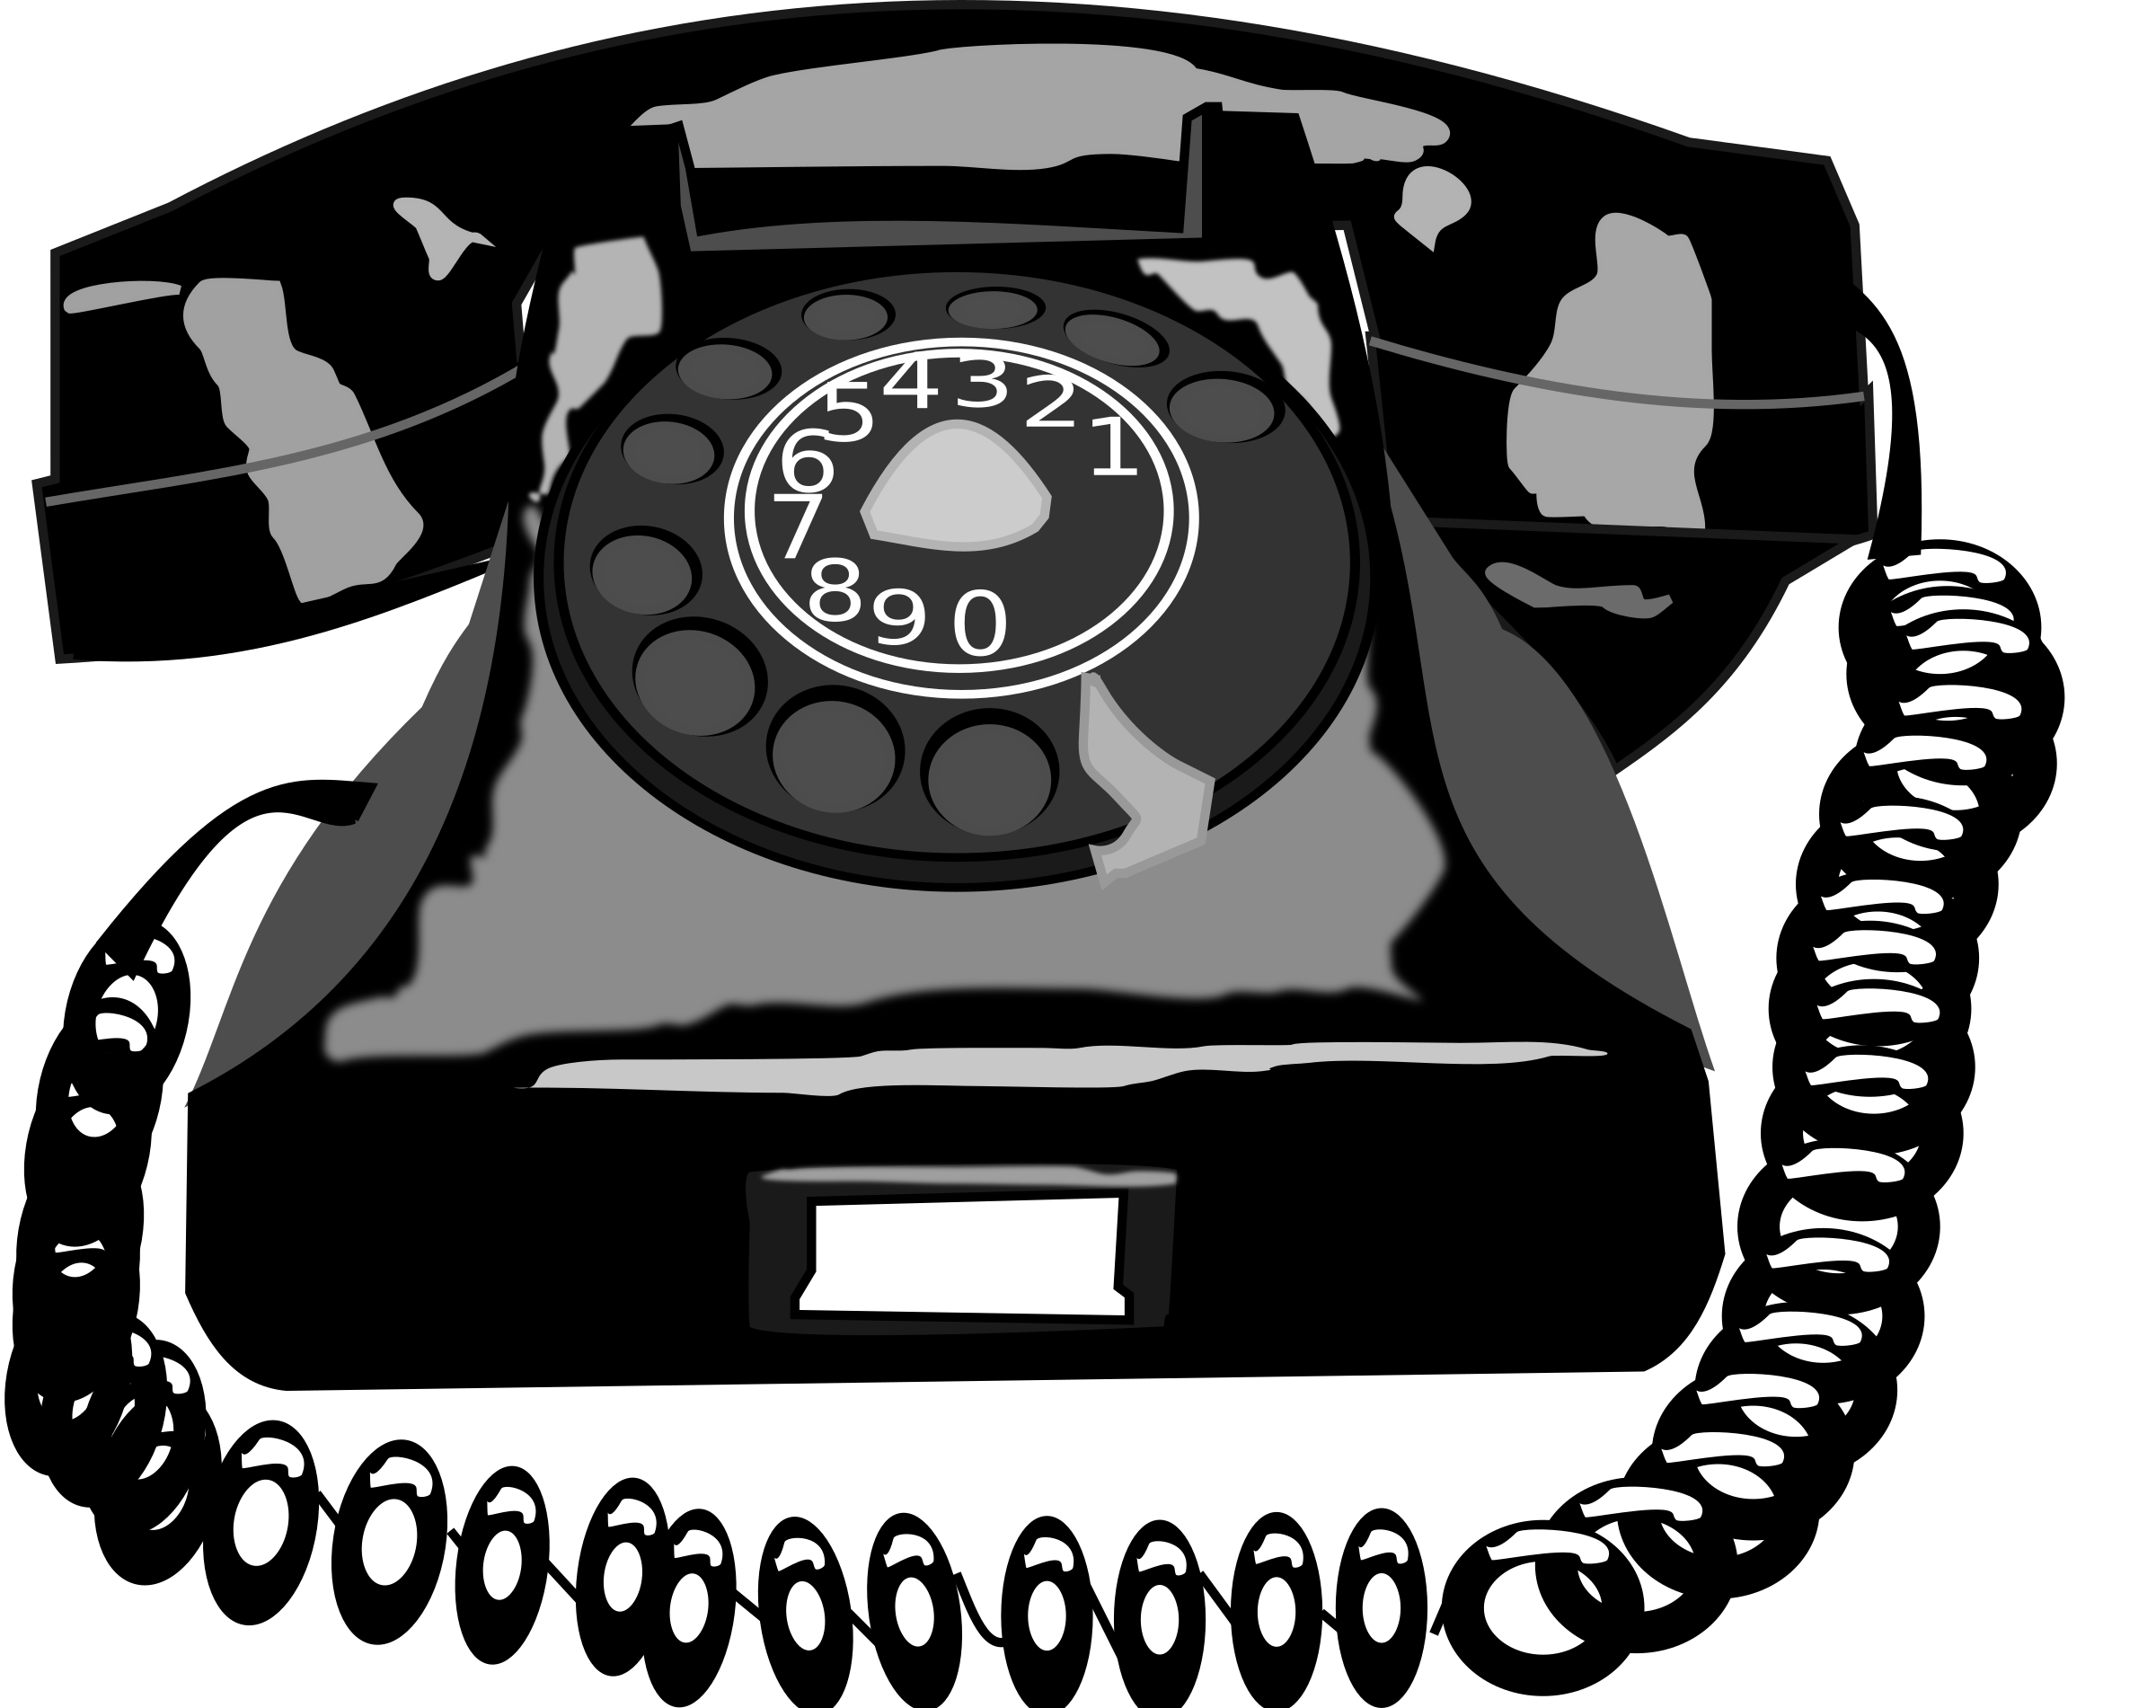 Telephone clipart retro telephone. Telefone vintage big image